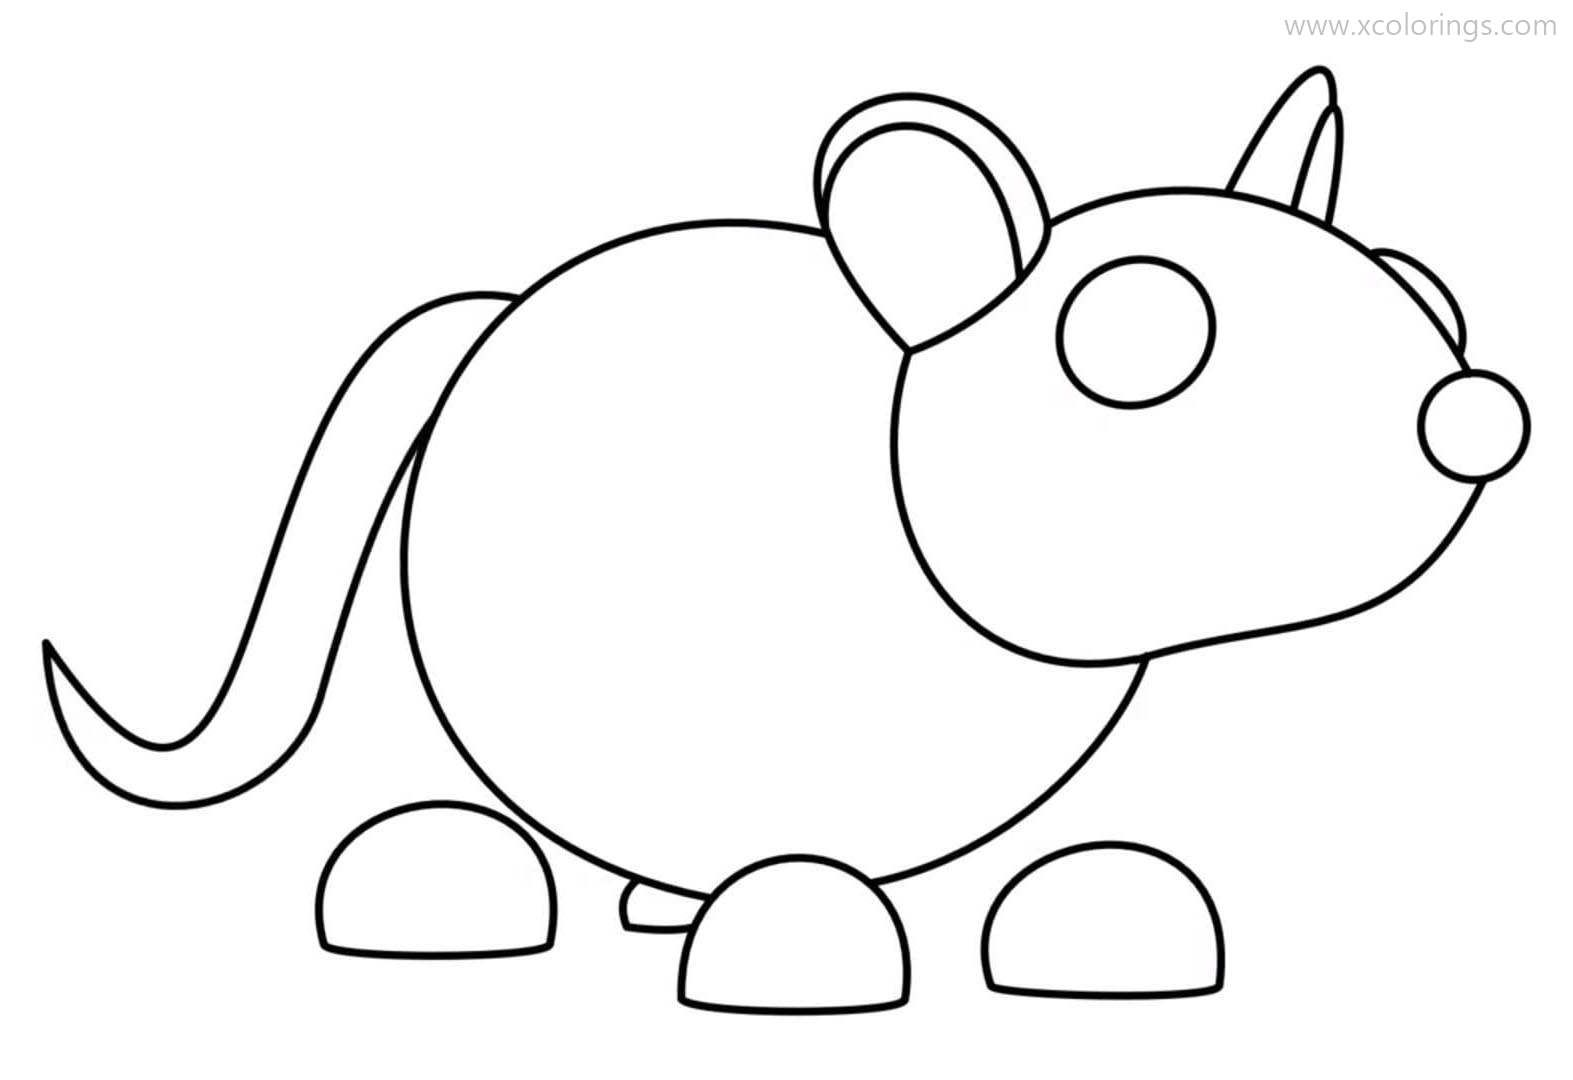 Roblox Adopt Me Coloring Pages Golden Rat Pets Drawing Coloring Pages Adoption